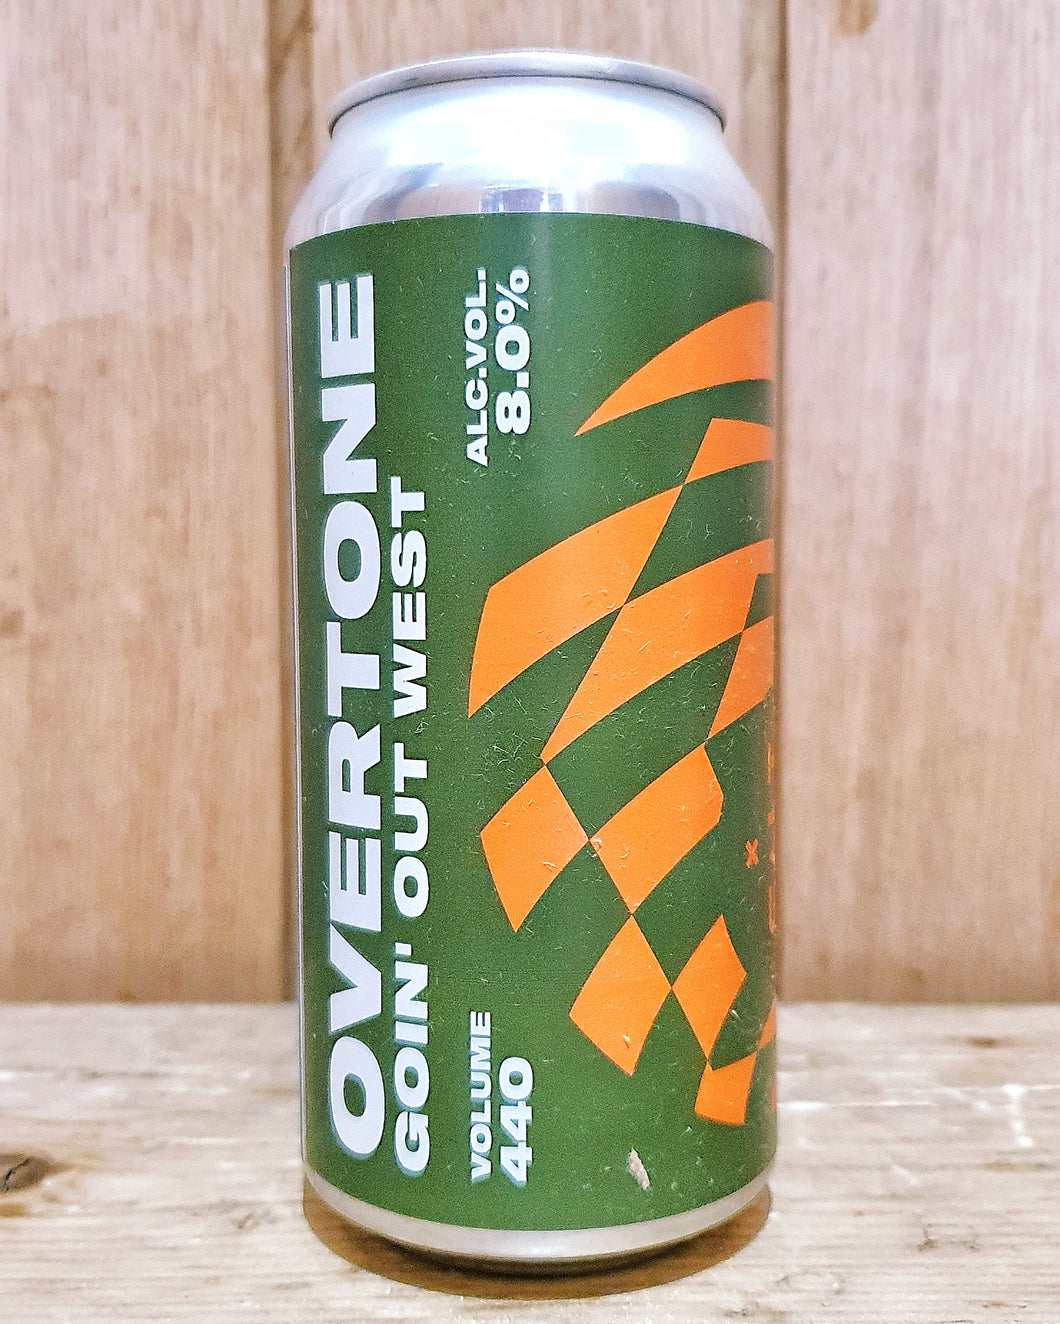 Overtone - Going Out West